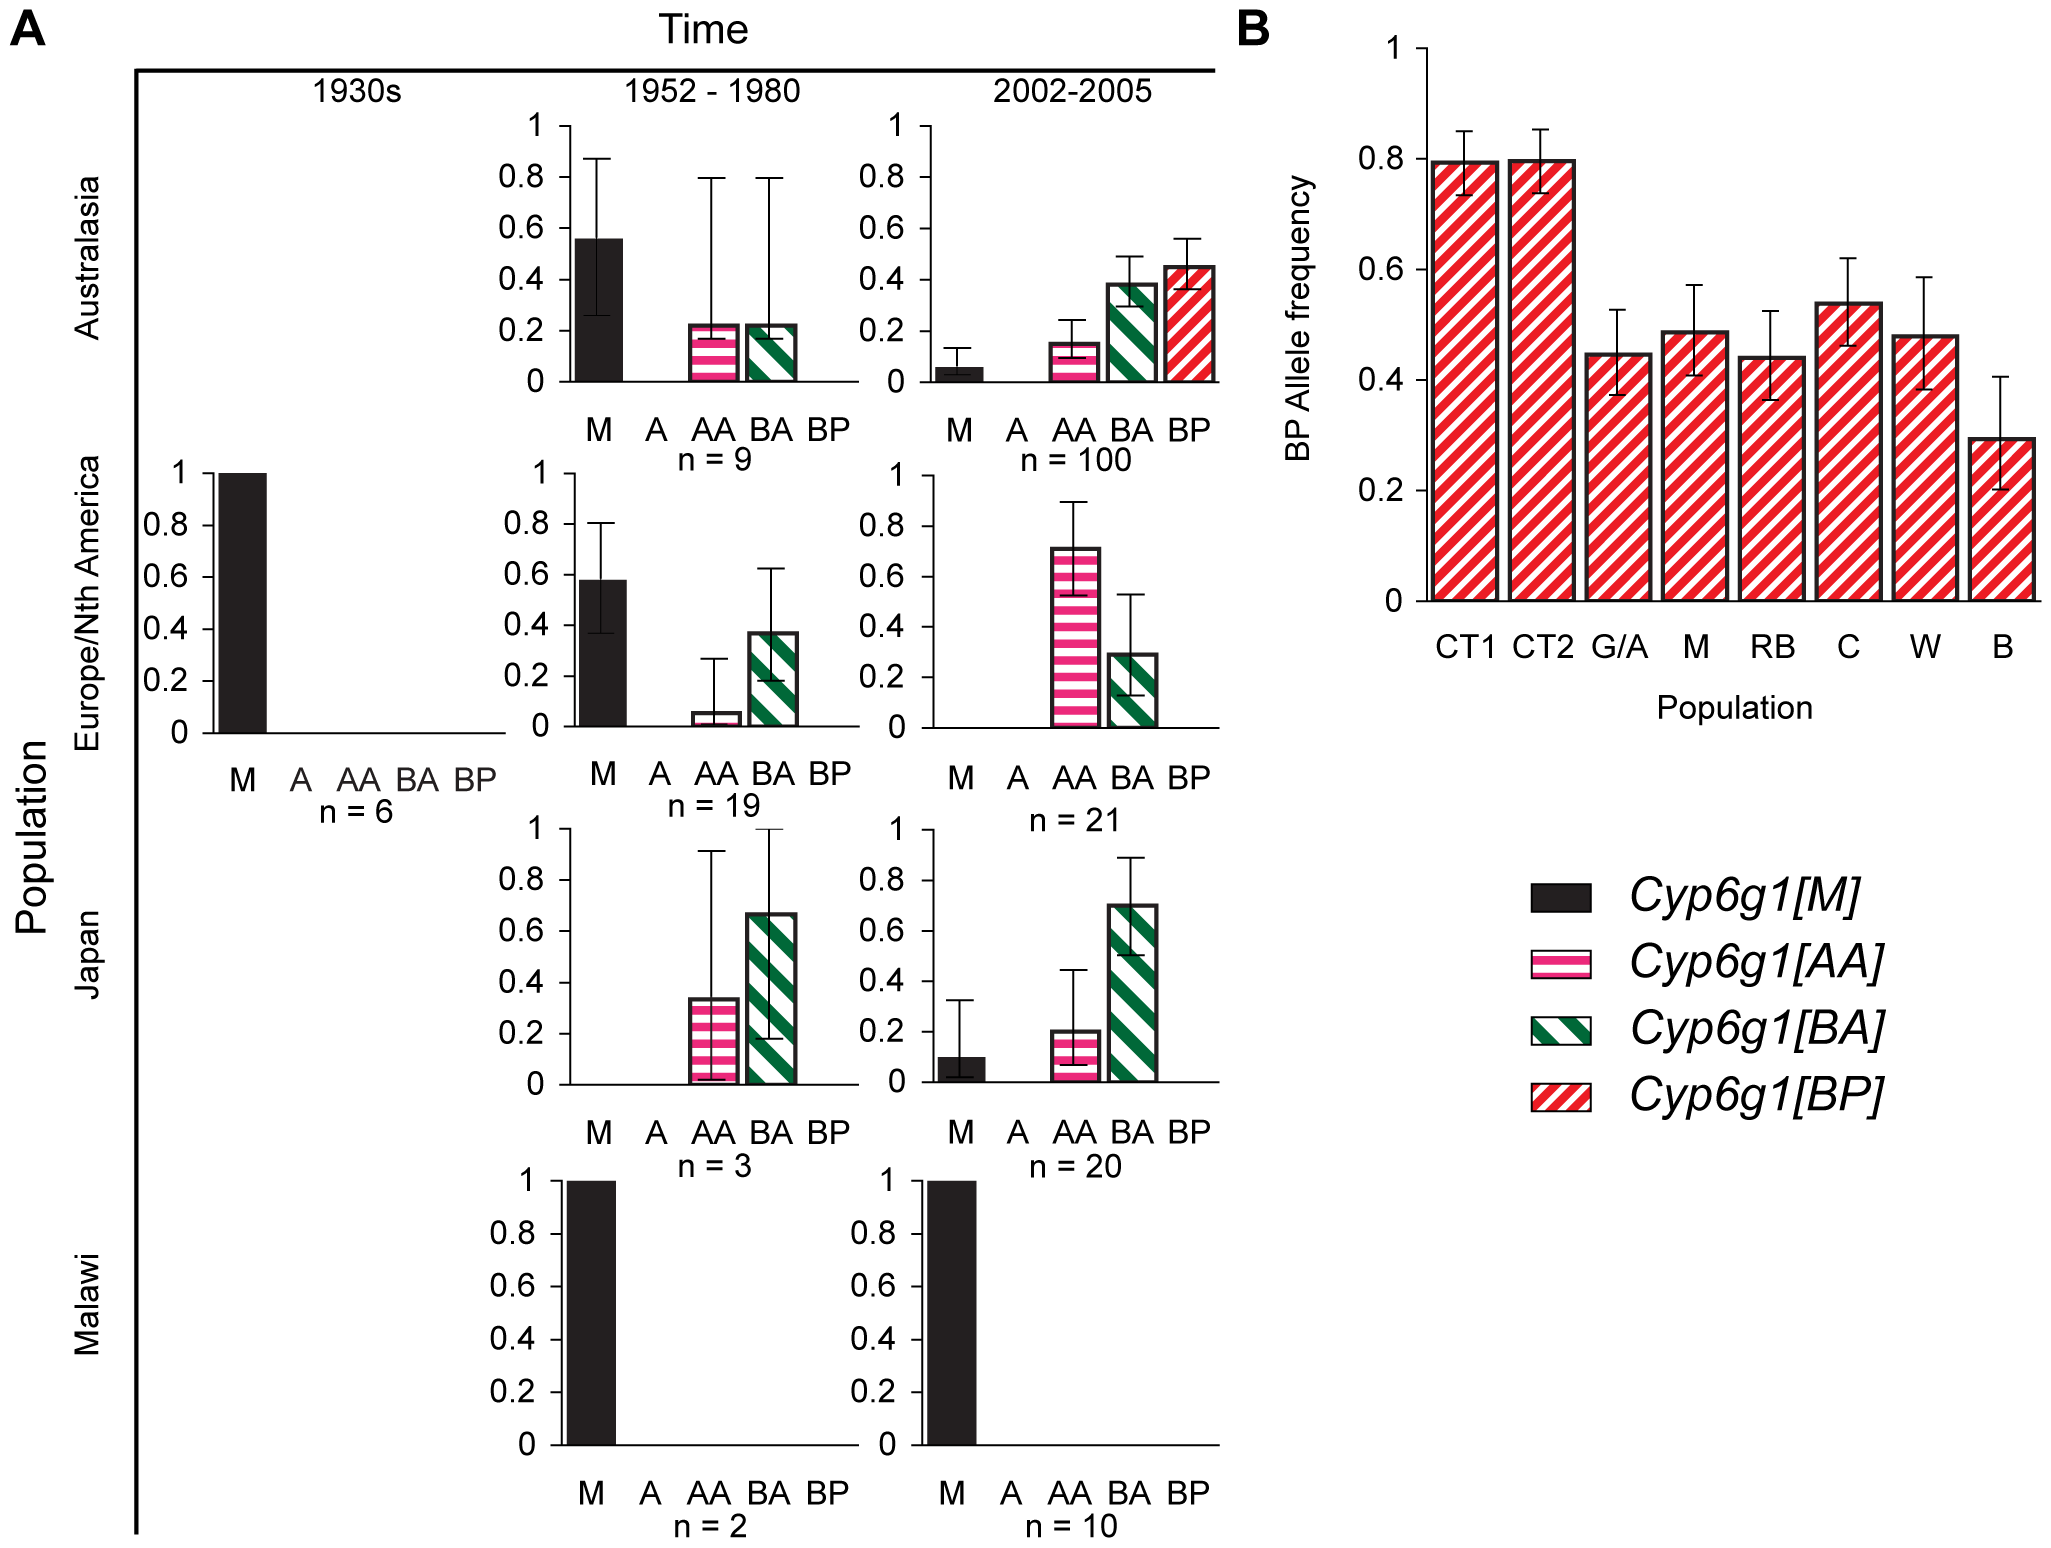 Temporal and geographic changes in <i>Cyp6g1</i> allele frequencies.